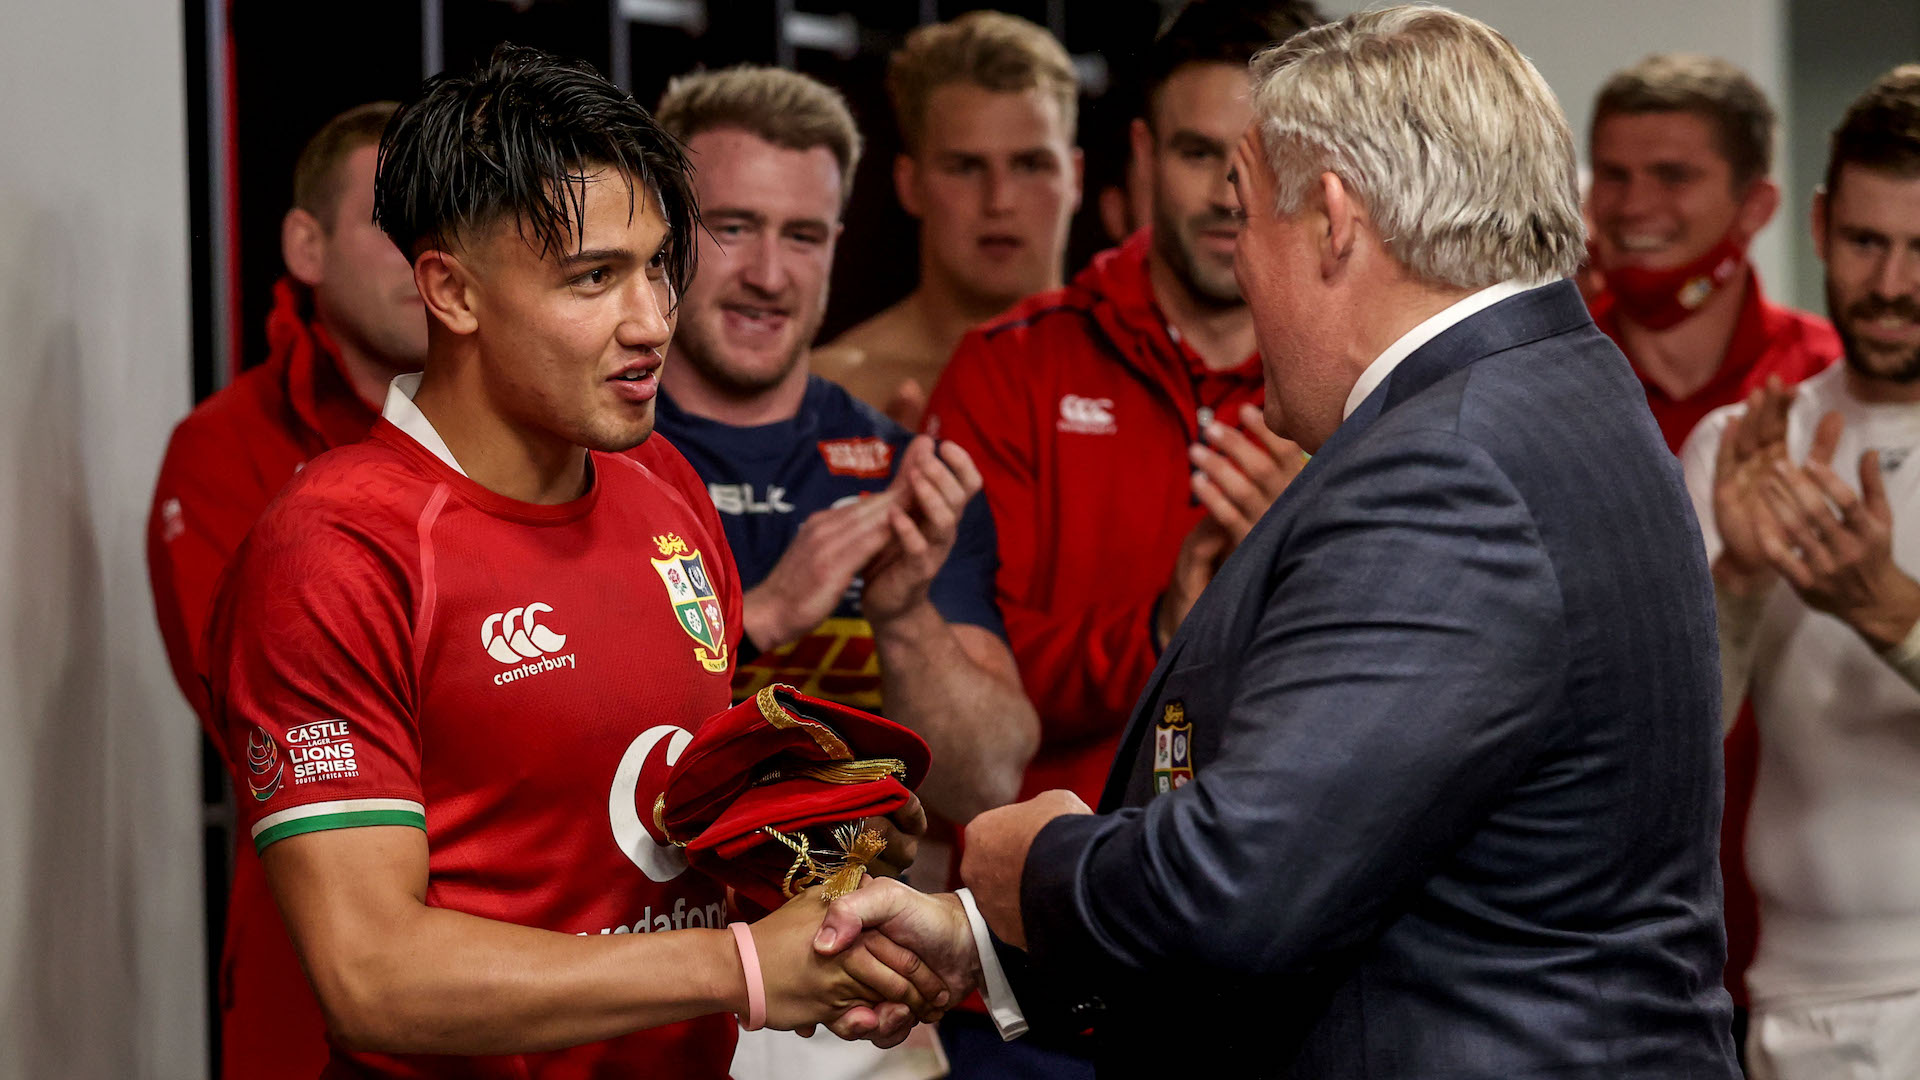 Marcus Smith is presented with his first cap